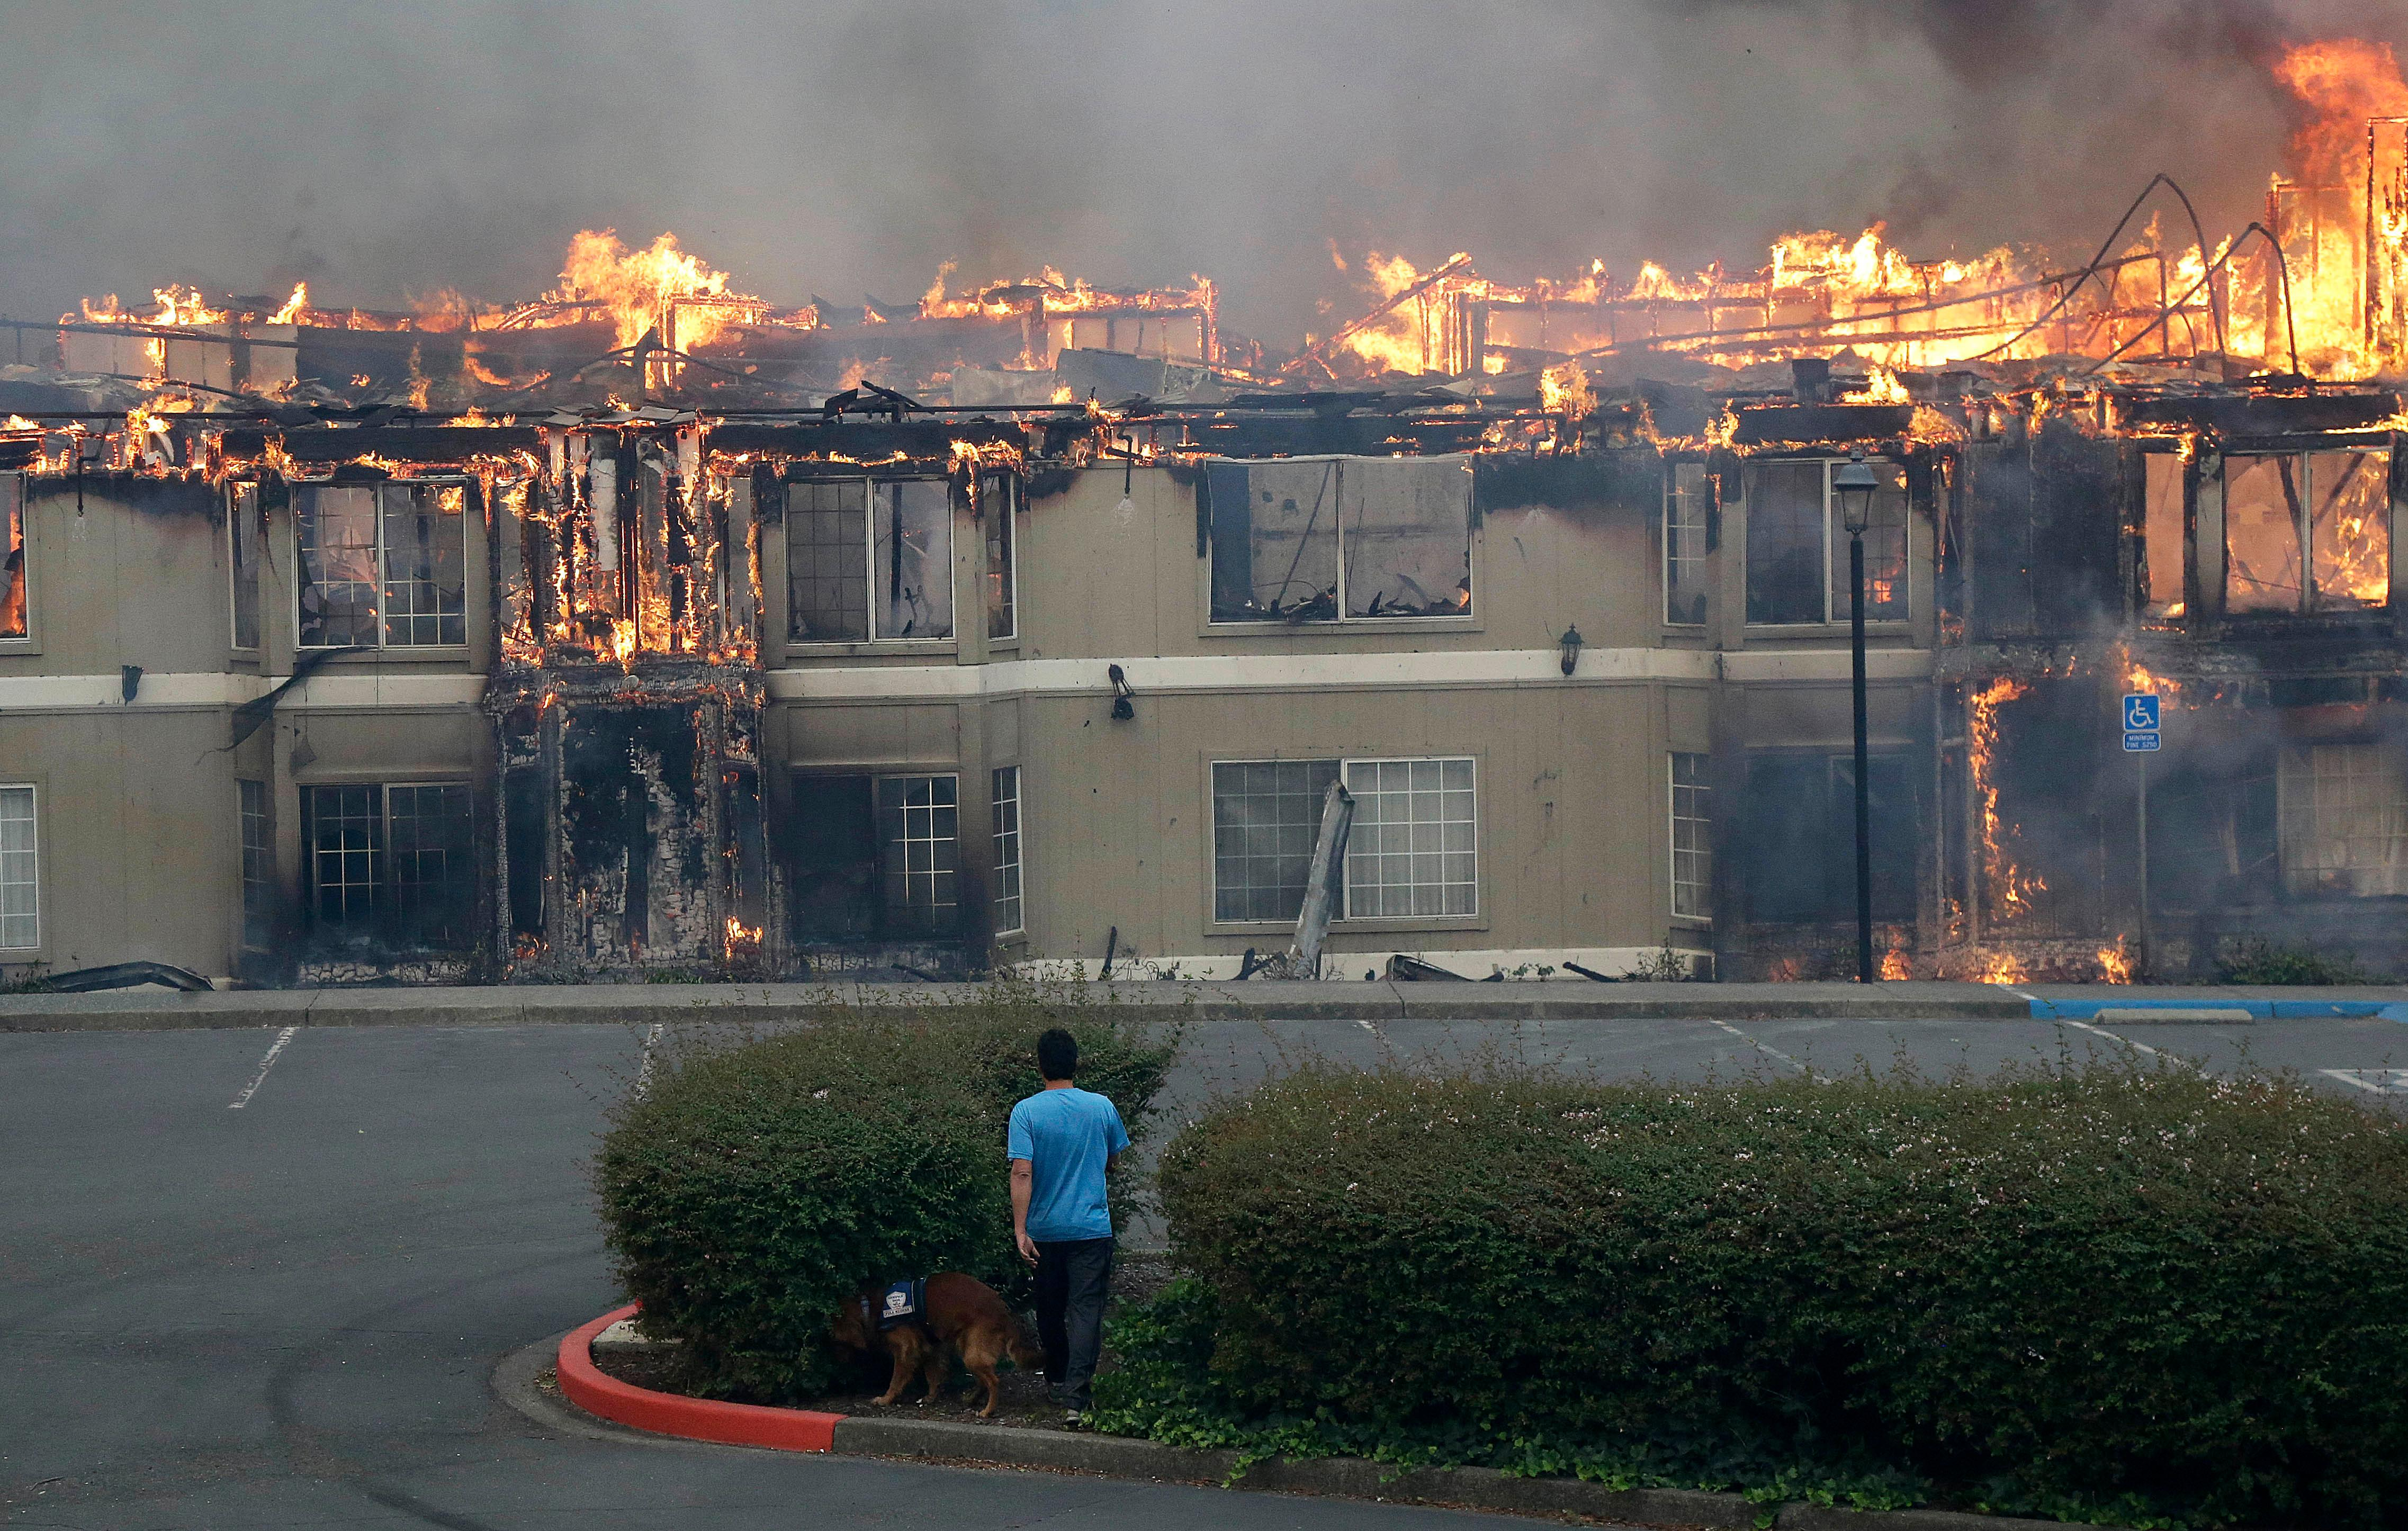 Rudy Habibe, from Puerto Rico, and his service dog Maximus walk toward a burning building at the Hilton Sonoma Wine Country hotel, where he was a guest, in Santa Rosa, Calif., Monday, Oct. 9, 2017. Wildfires whipped by powerful winds swept through Northern California sending residents on a headlong flight to safety through smoke and flames as homes burned. (AP Photo/Jeff Chiu)